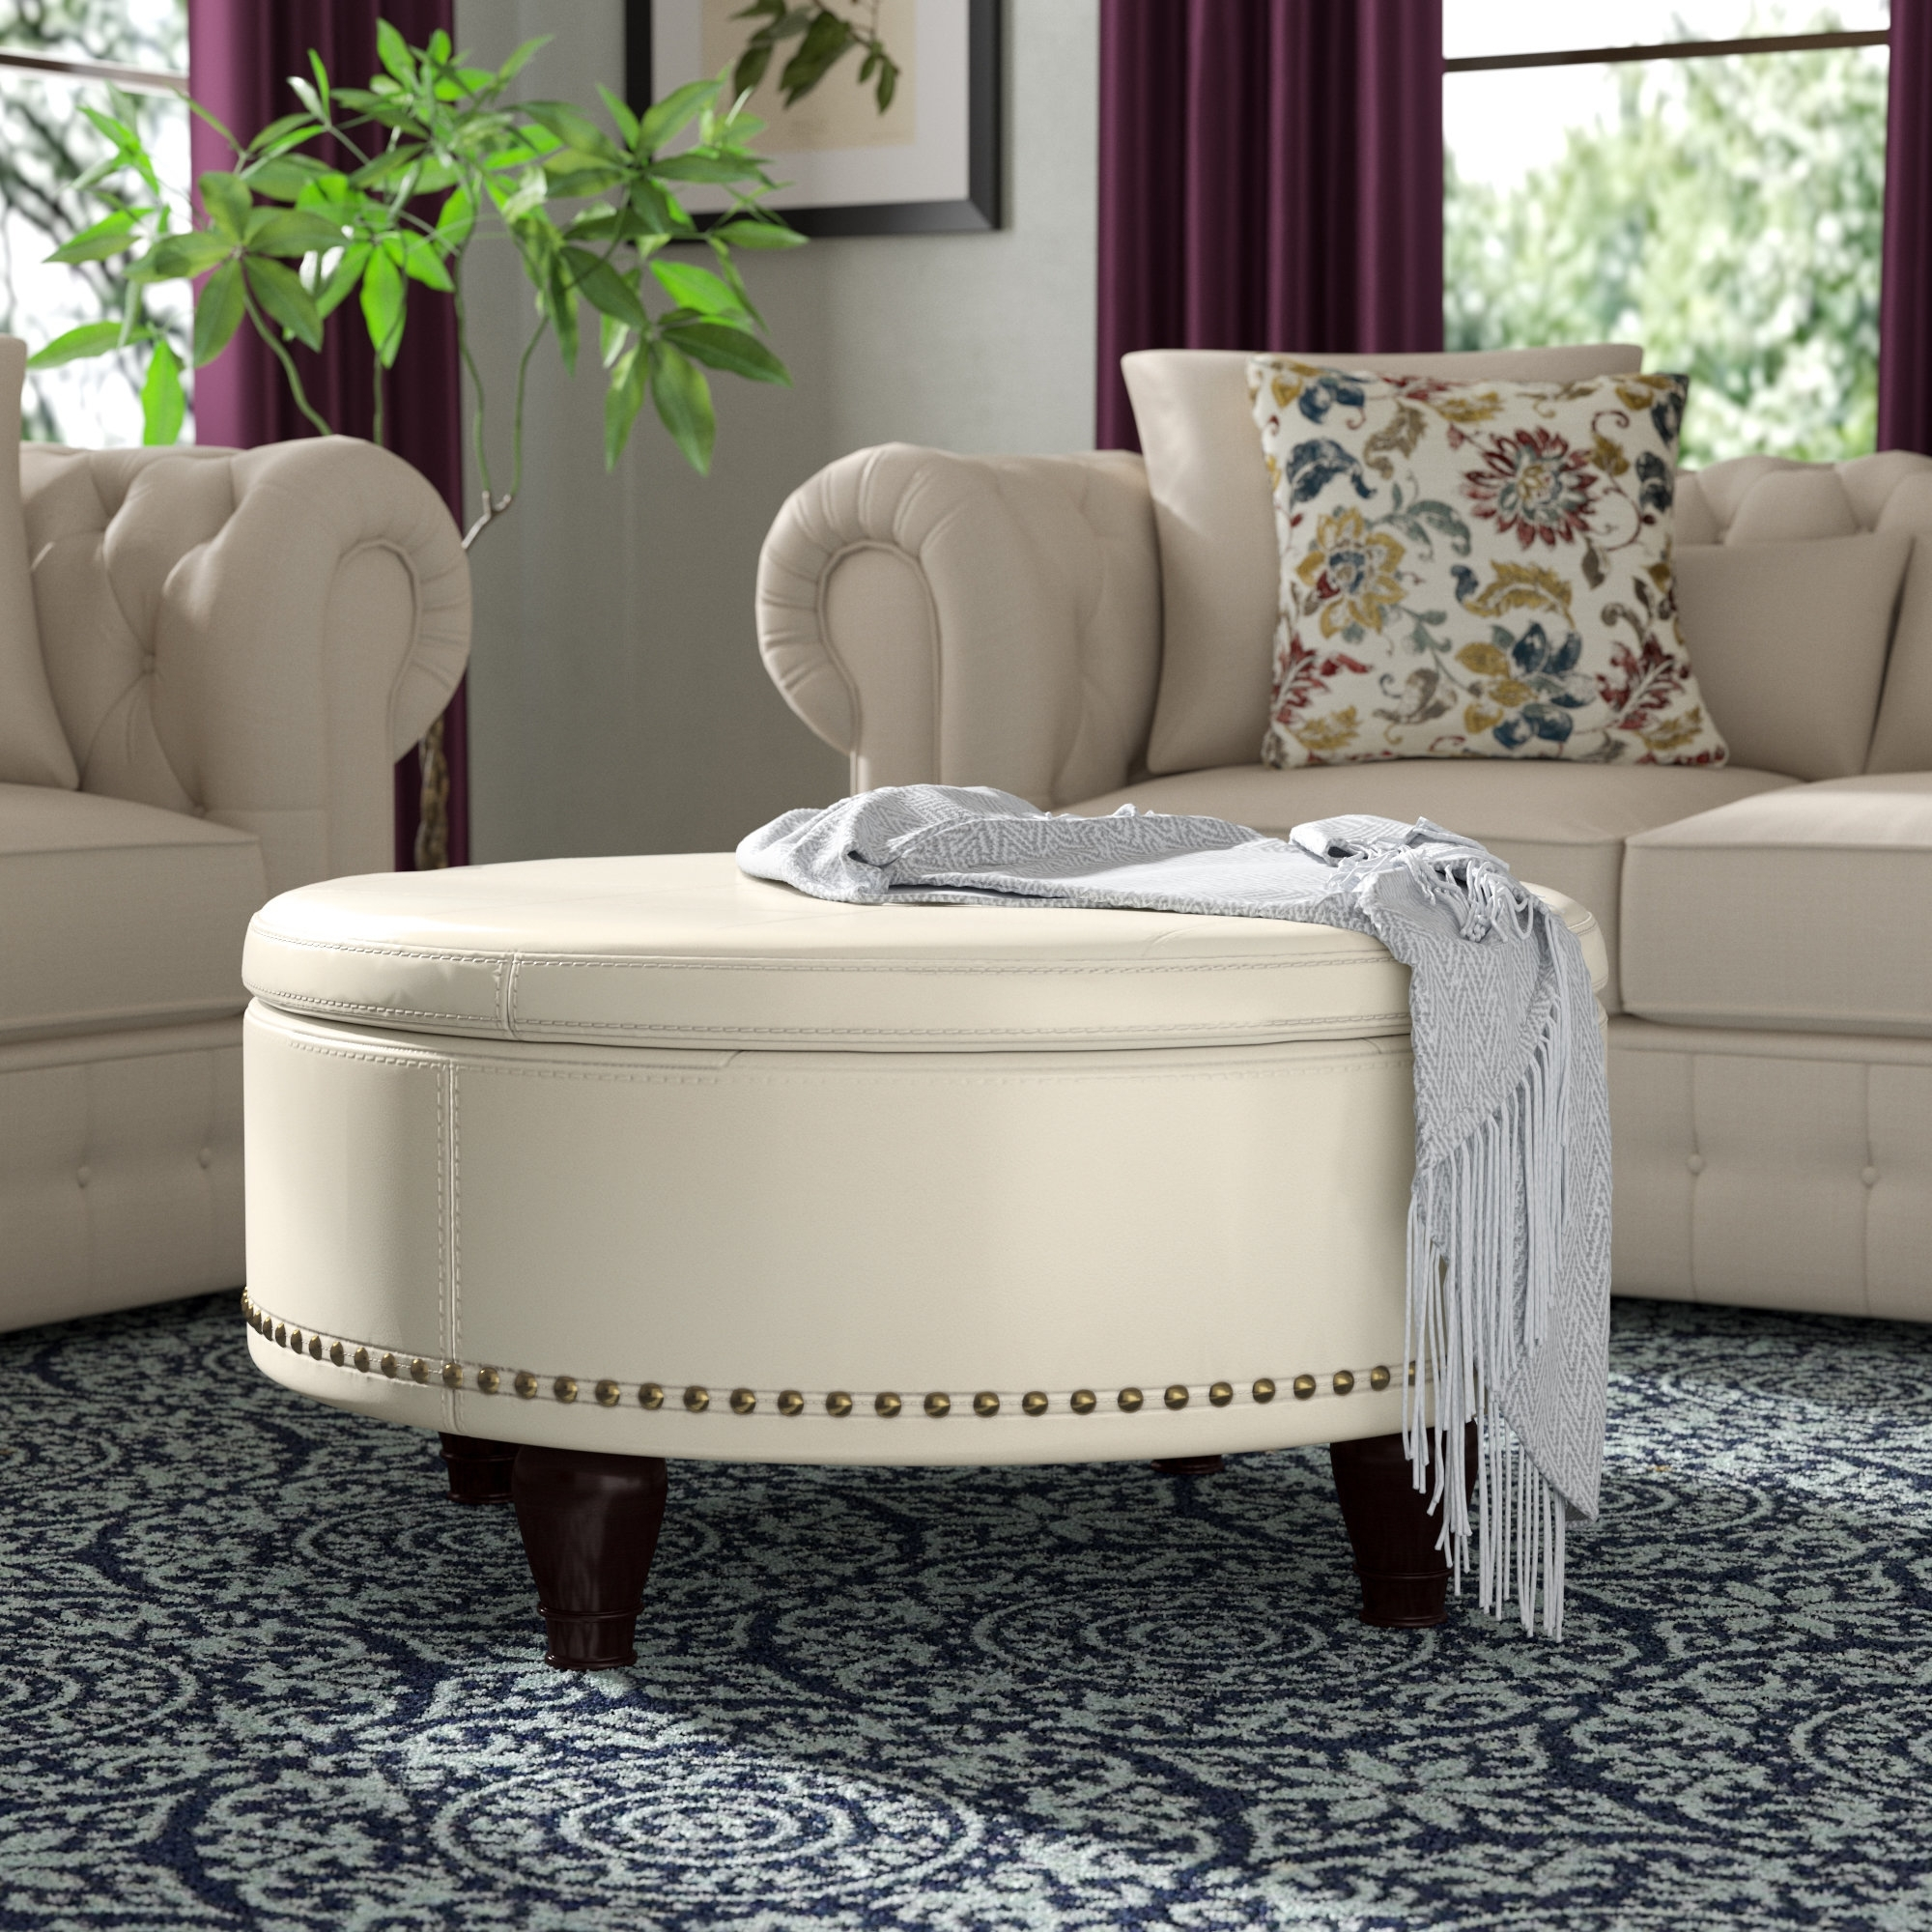 Darby Home Co Ellen Storage Ottoman & Reviews | Wayfair inside Mill Large Leather Coffee Tables (Image 15 of 30)